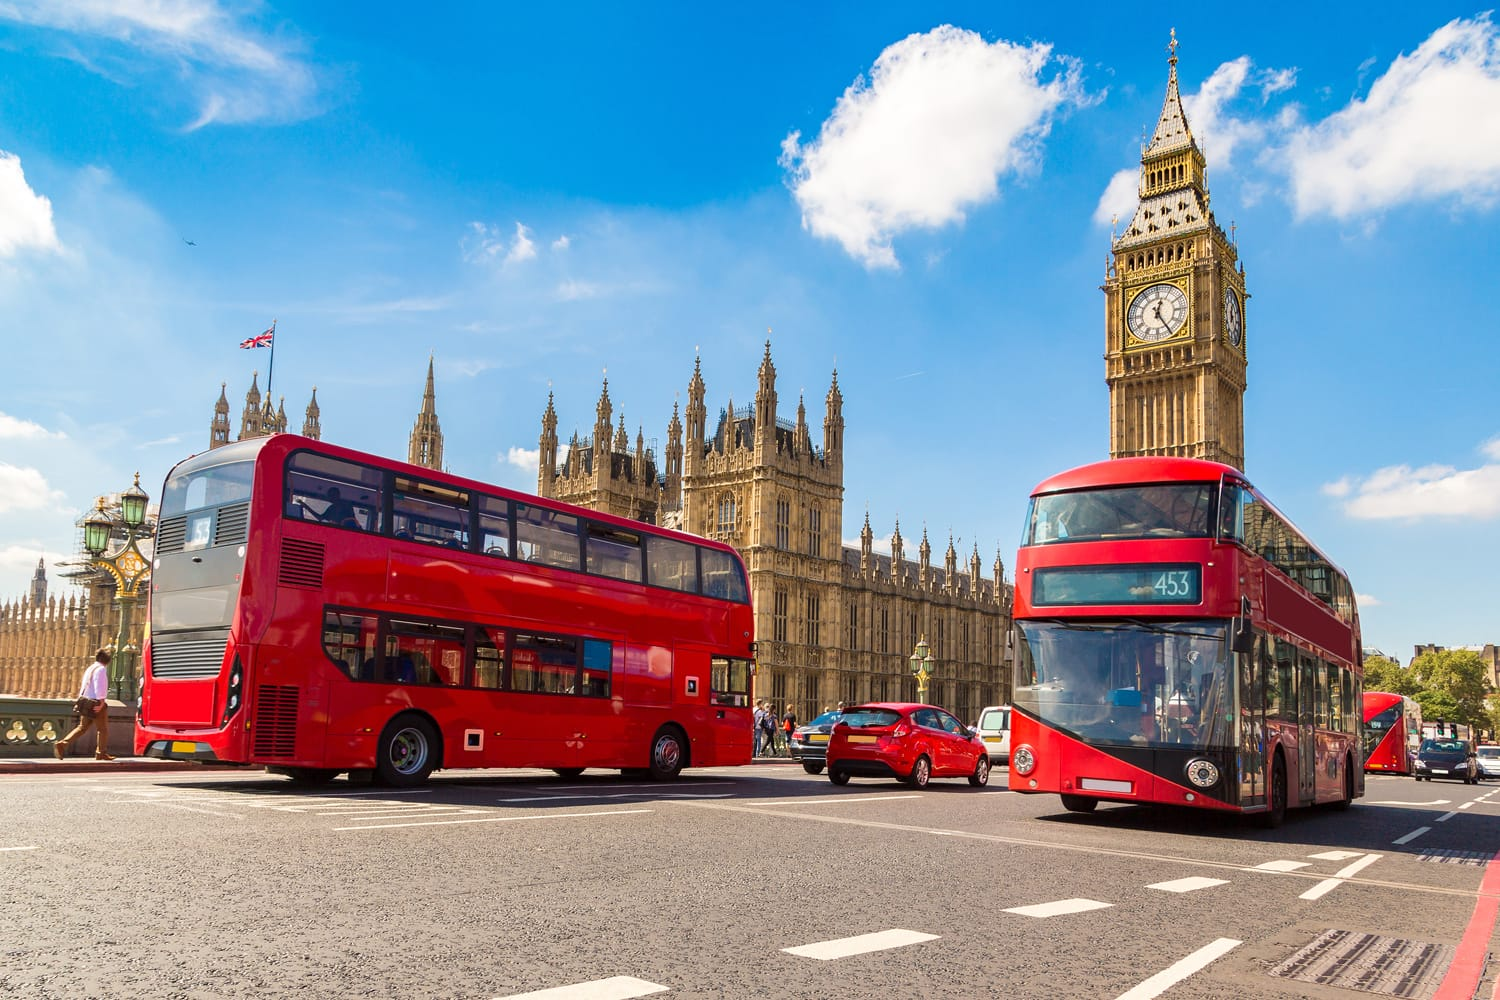 London Guided Bus Tours